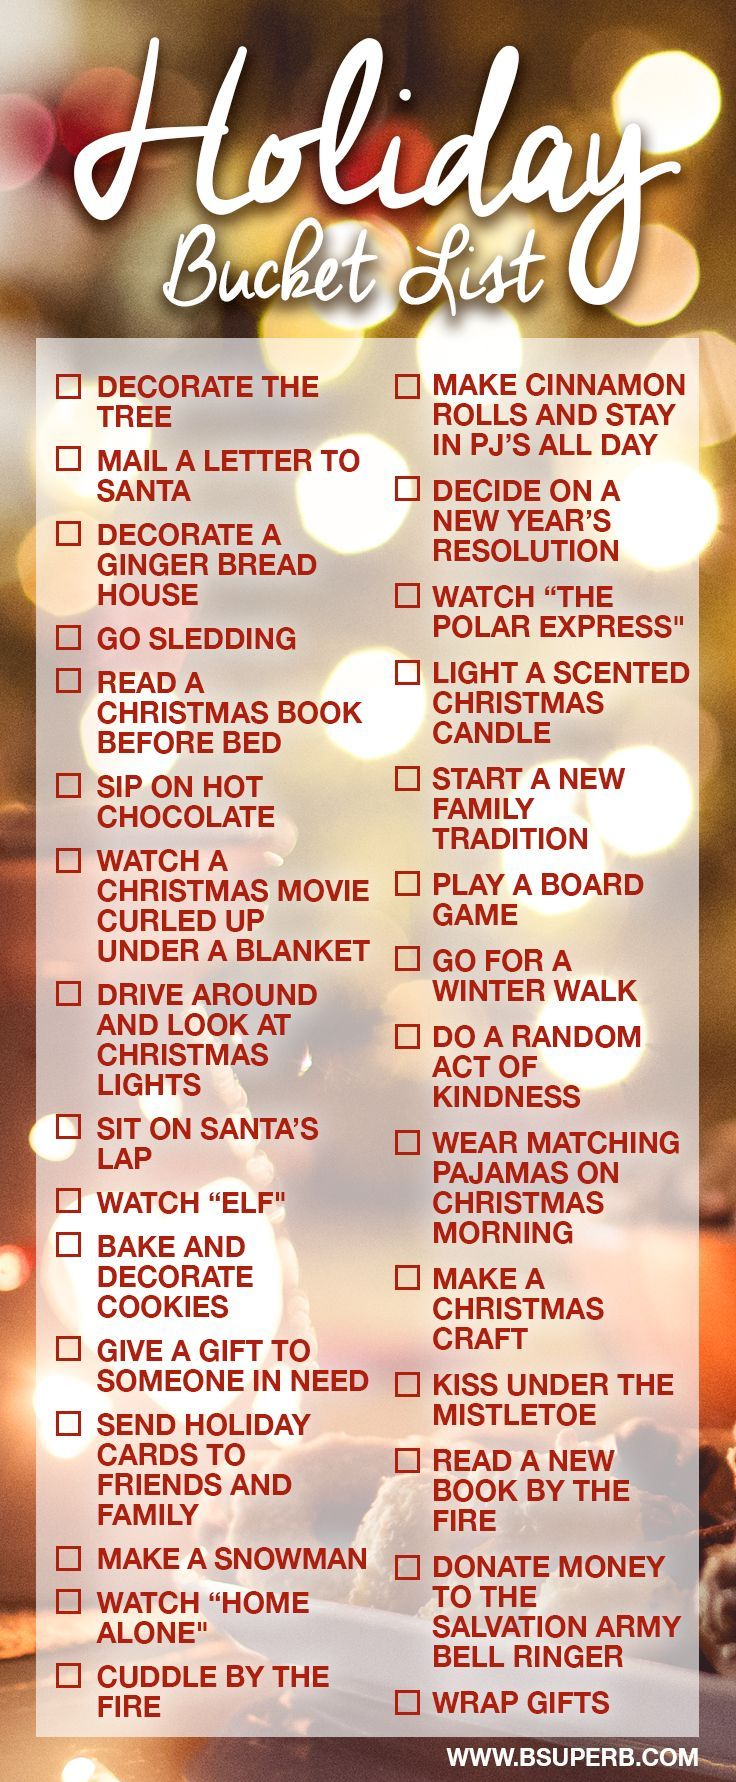 Holiday Bucket List Christmas holidays, Christmas love